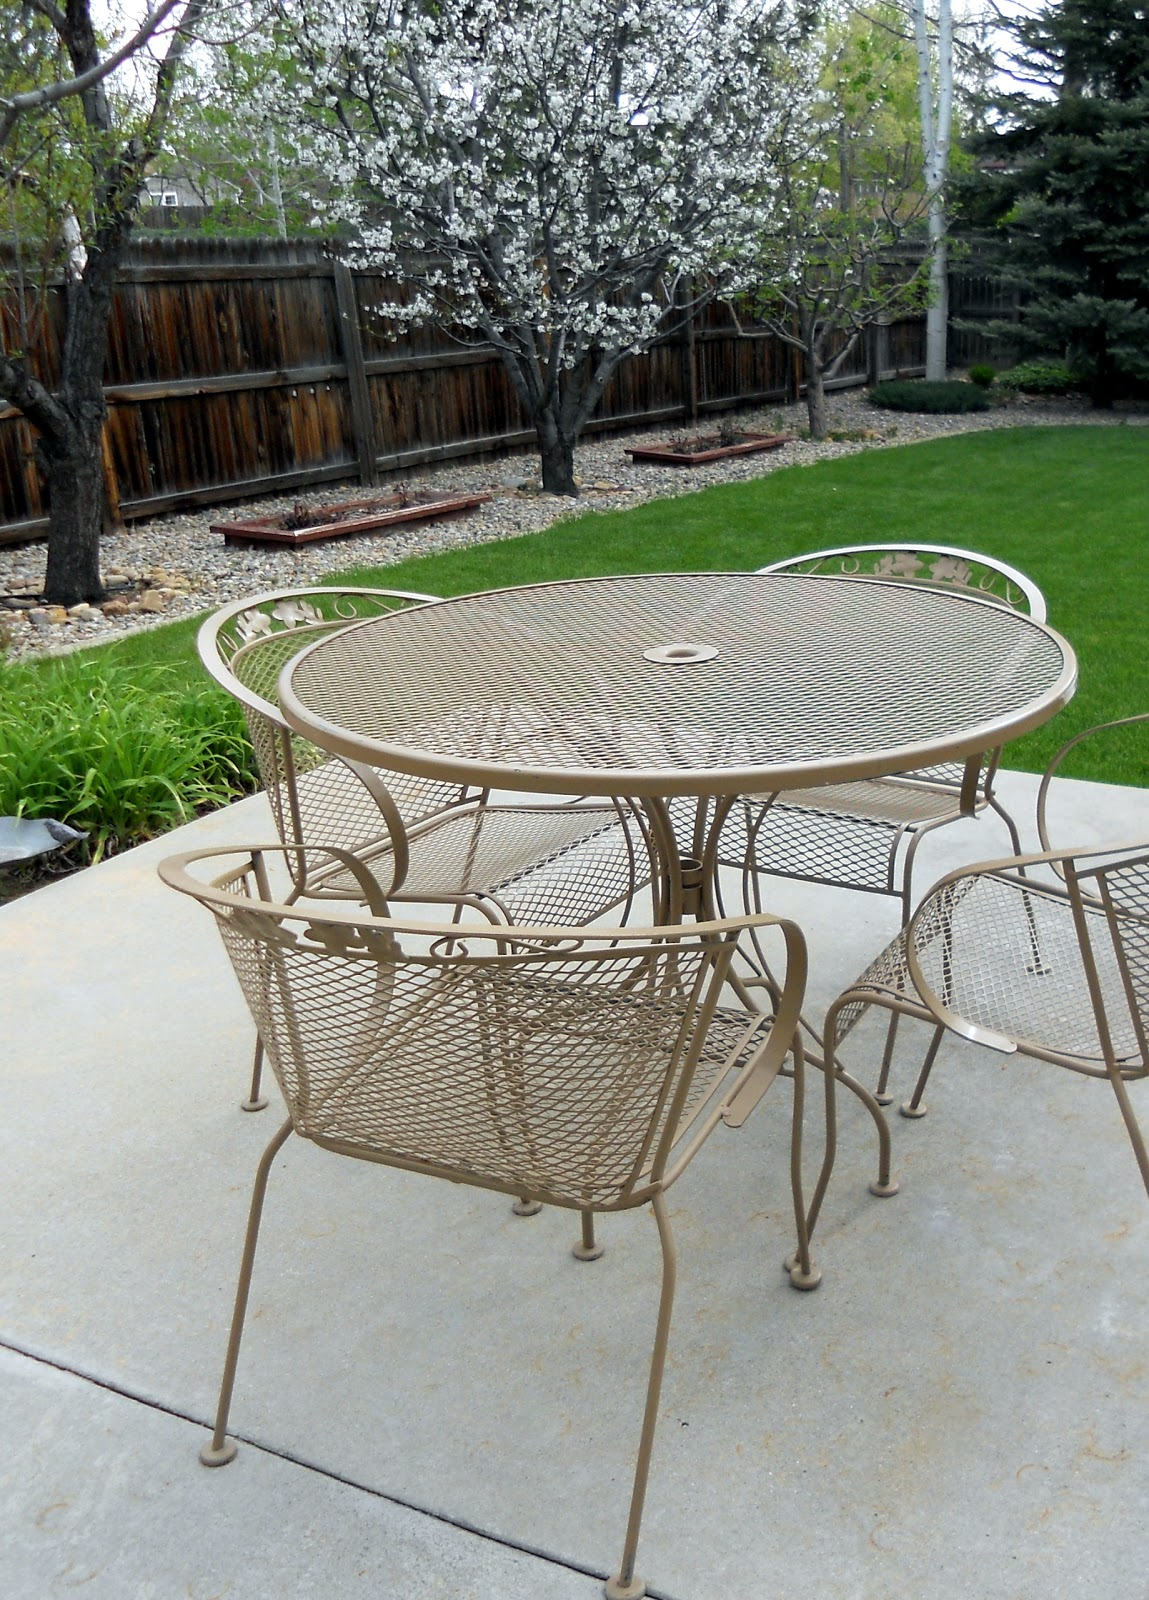 Refinish Wrought Iron Patio Furniture.Just Another Hang Up Patio Furniture Redo